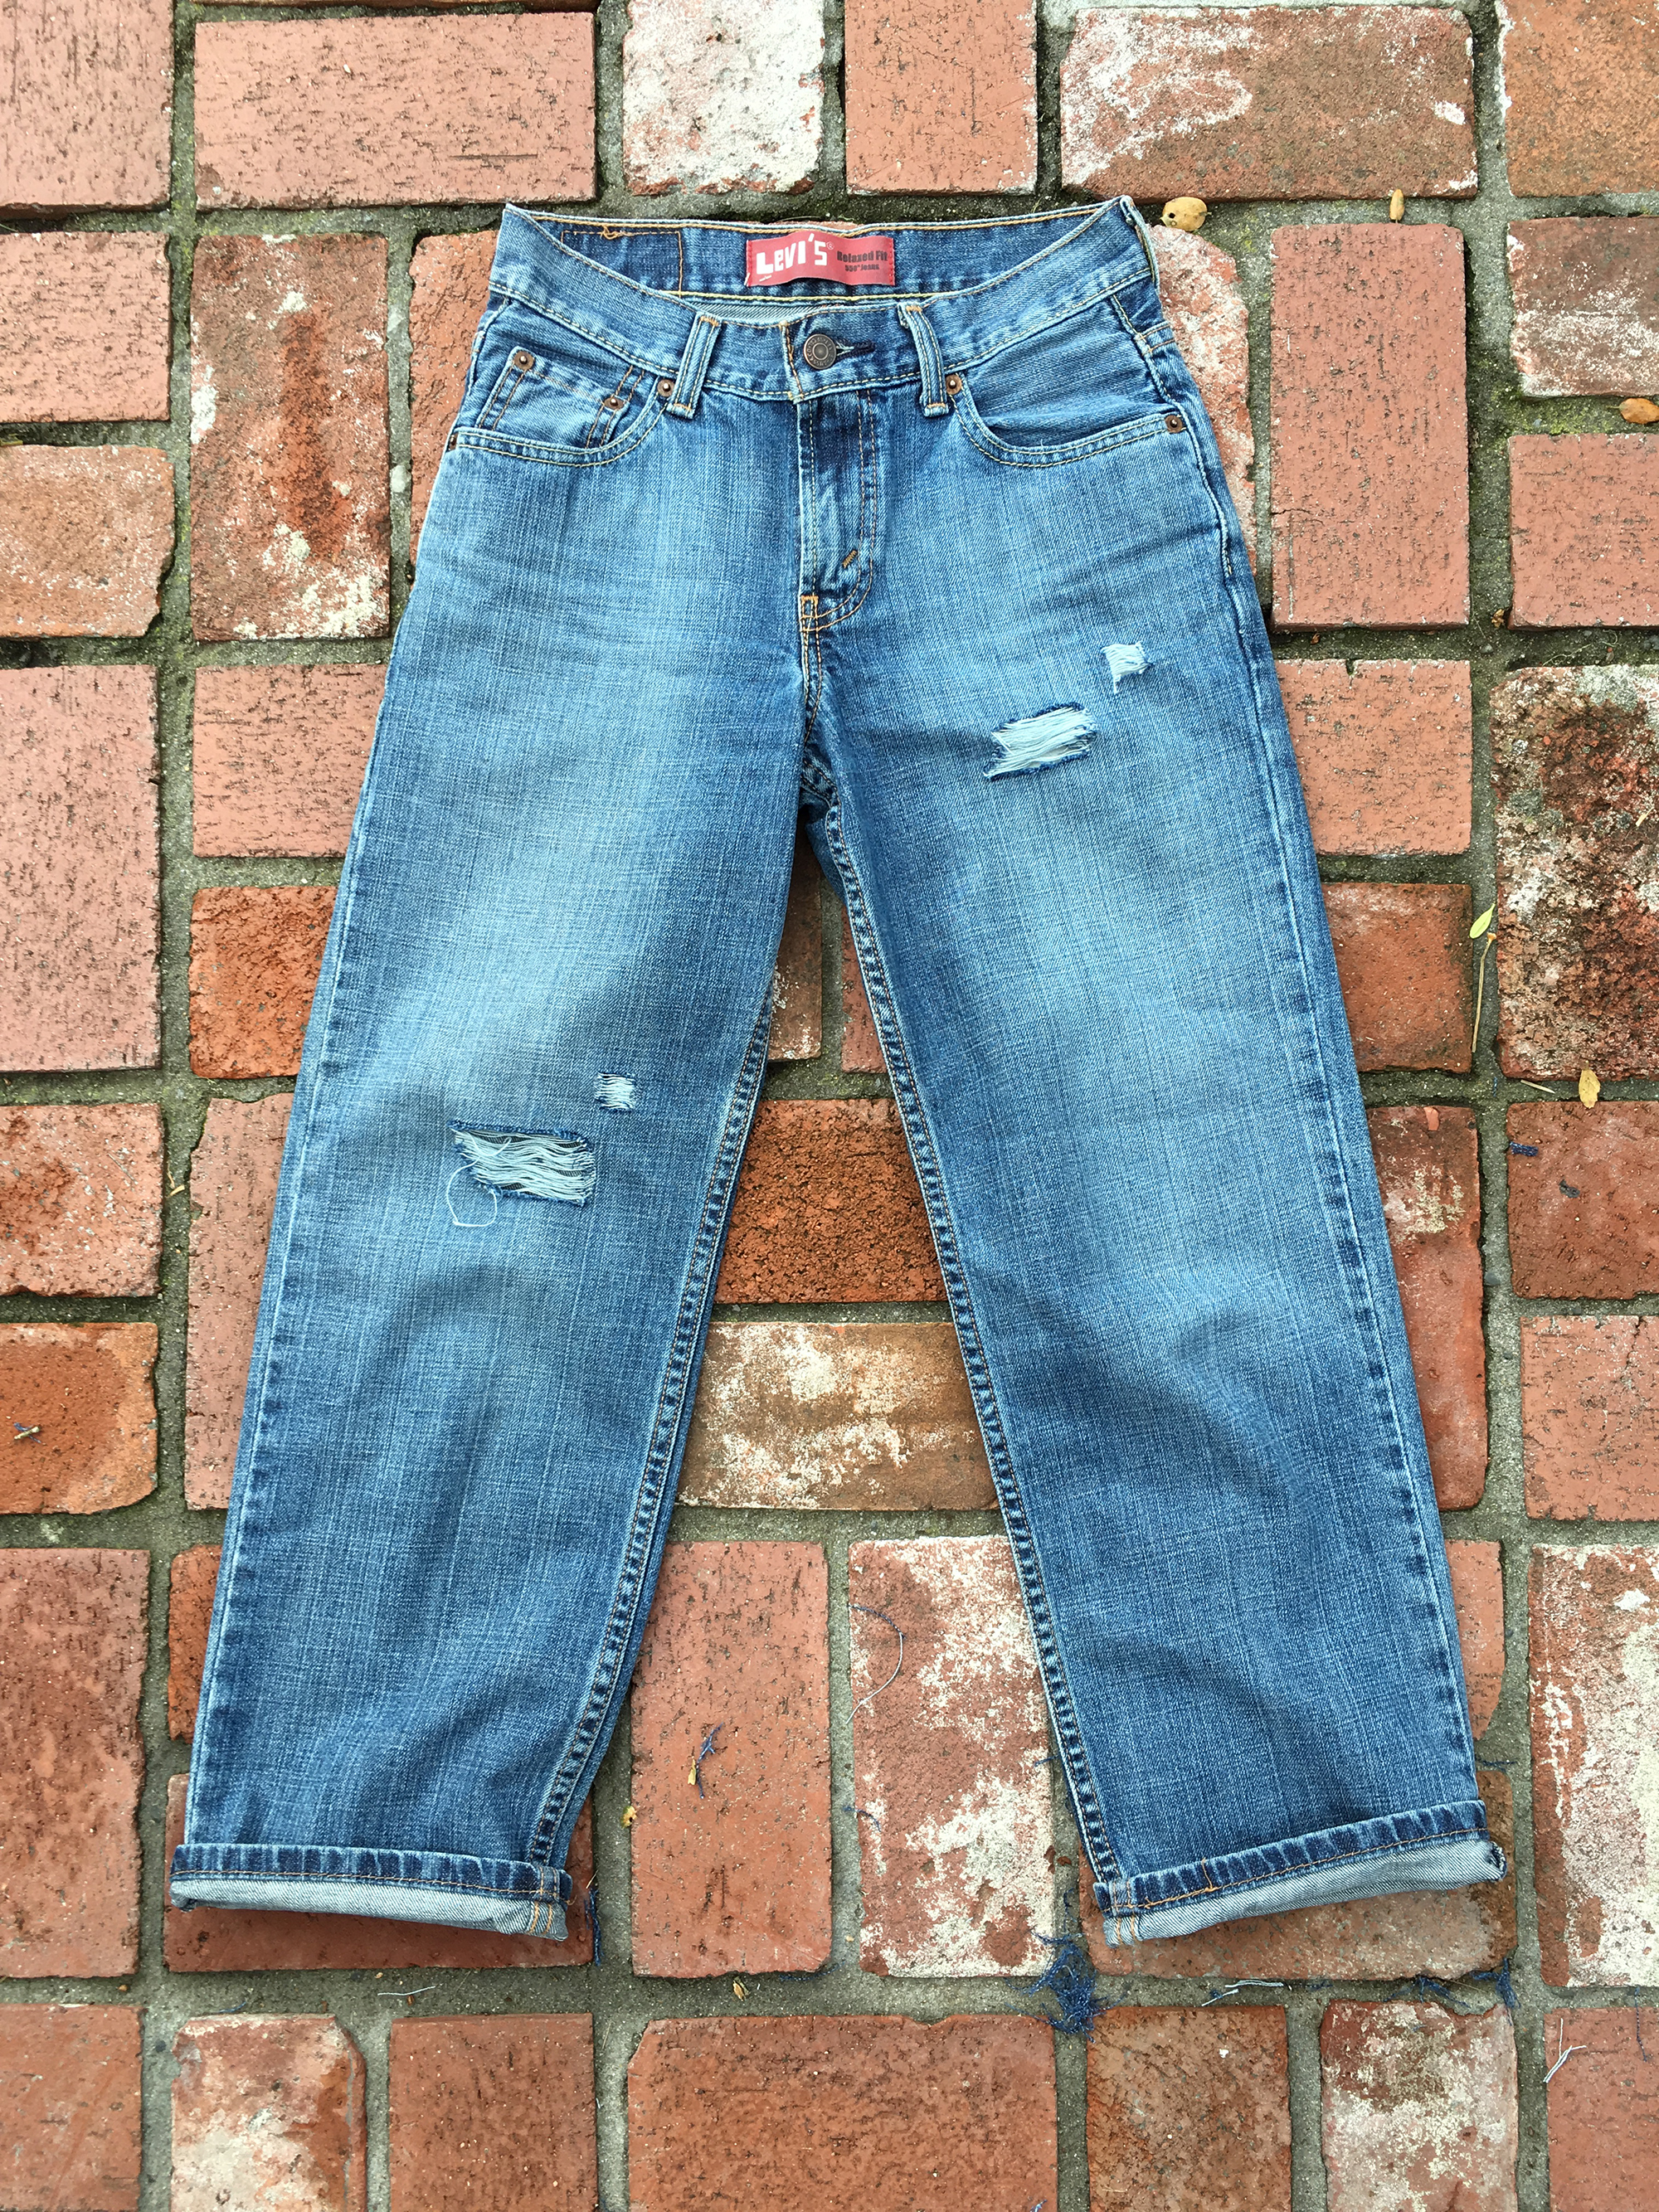 Pieceology-Vintage-How-To-DIY-Denim-Jeans-Ripping-Blog-11.jpg